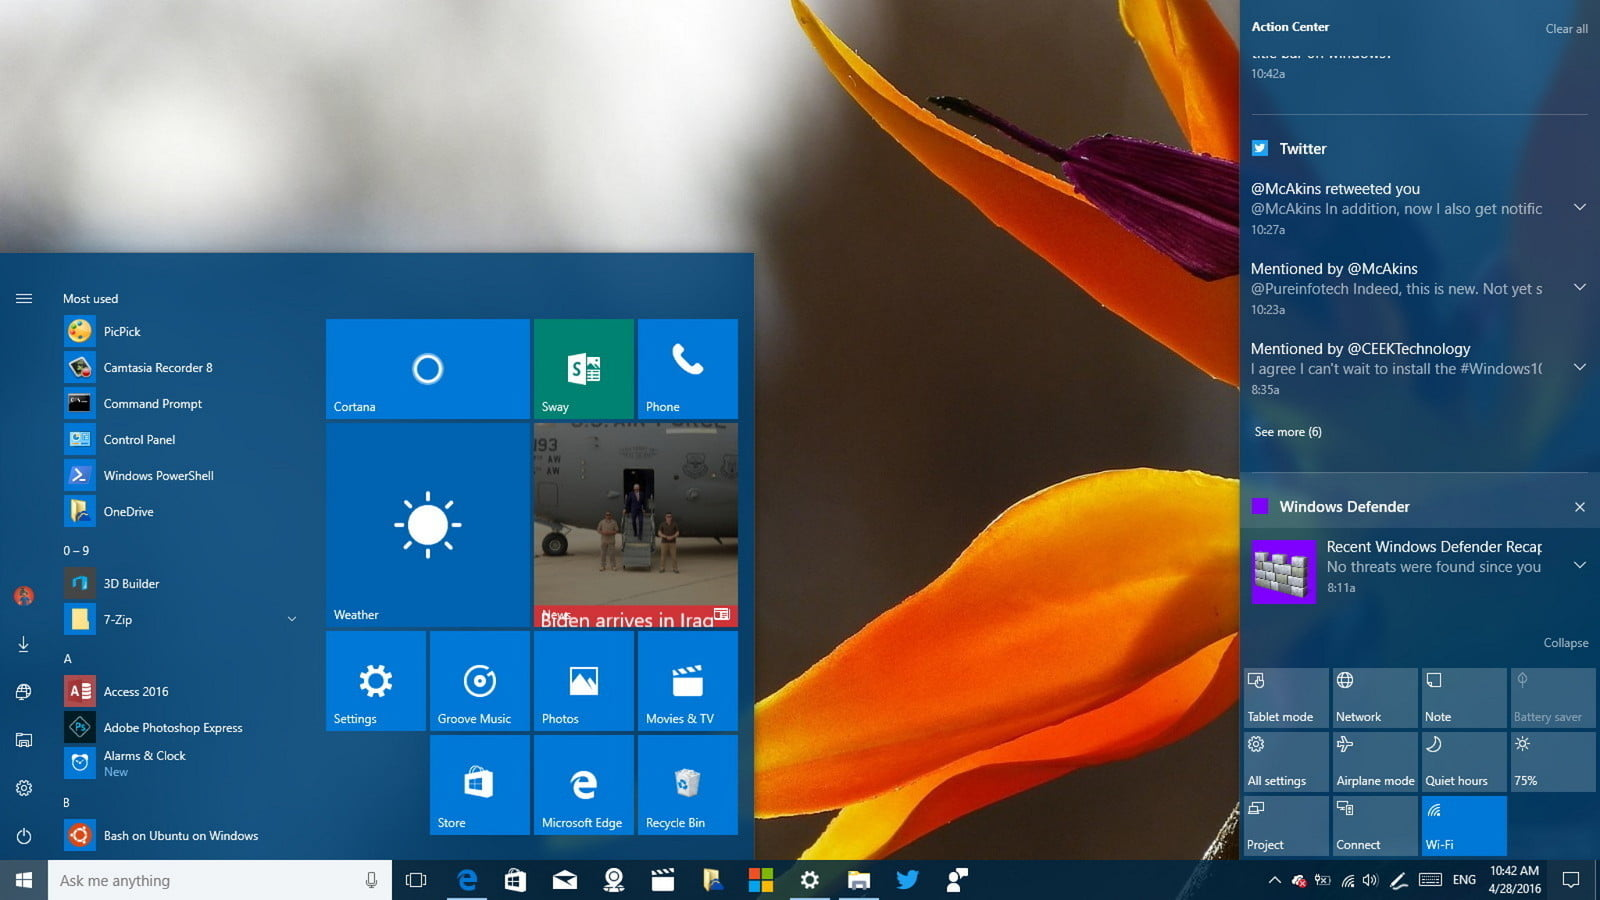 Here Is How To Turn Off Notifications In Windows 10?